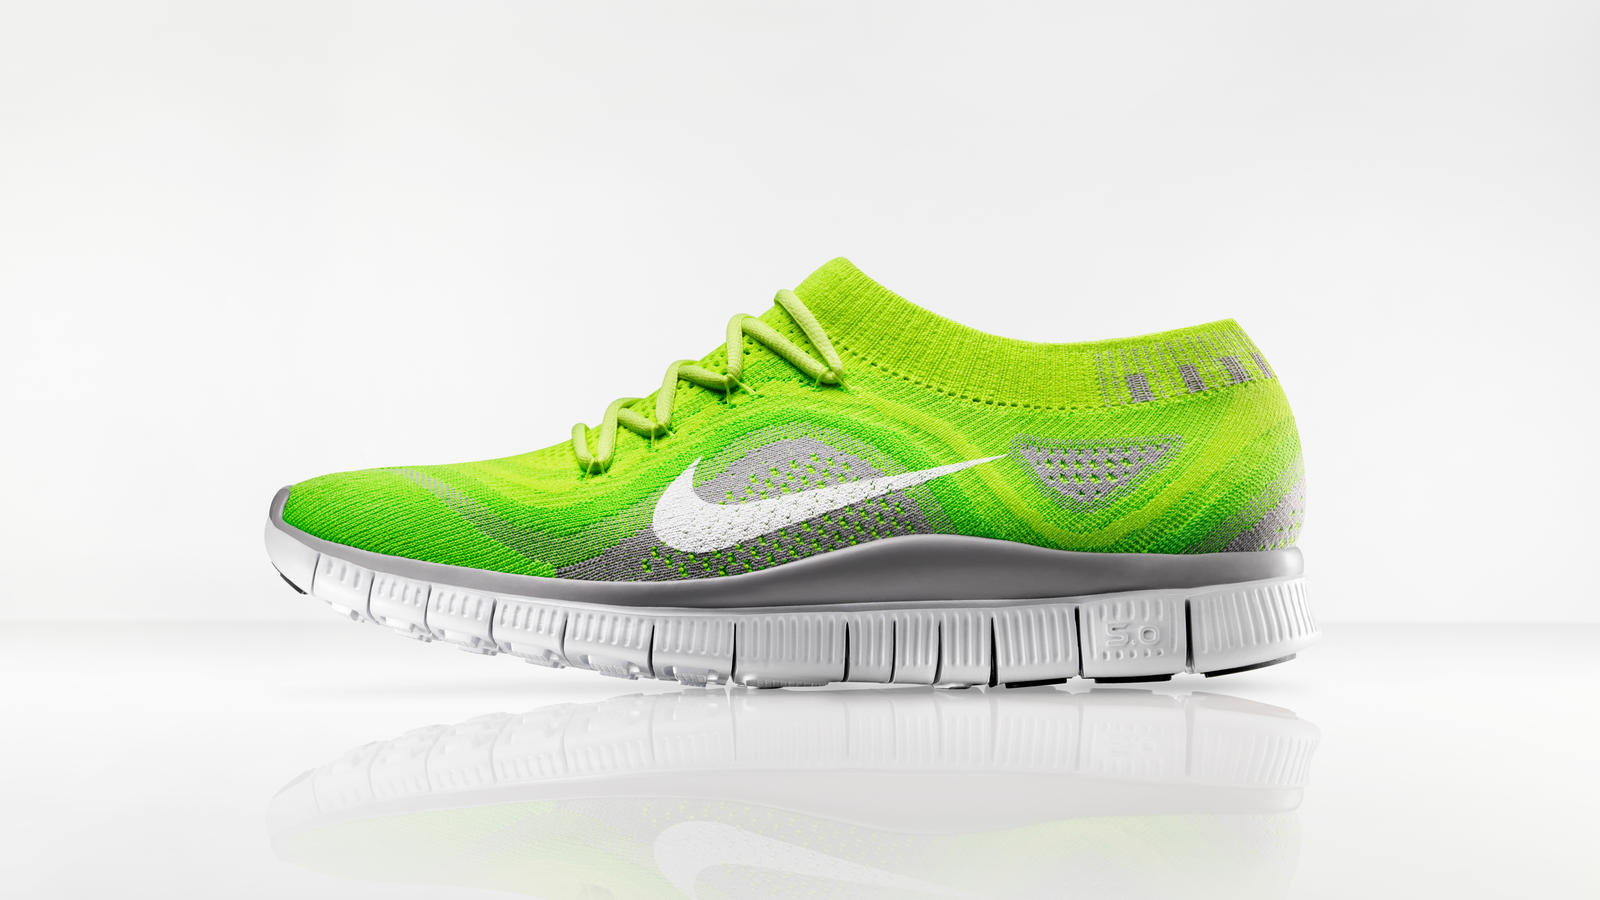 nike free flyknit Nike Free Flyknit Provides Compression Fit with Free Flexibility ...